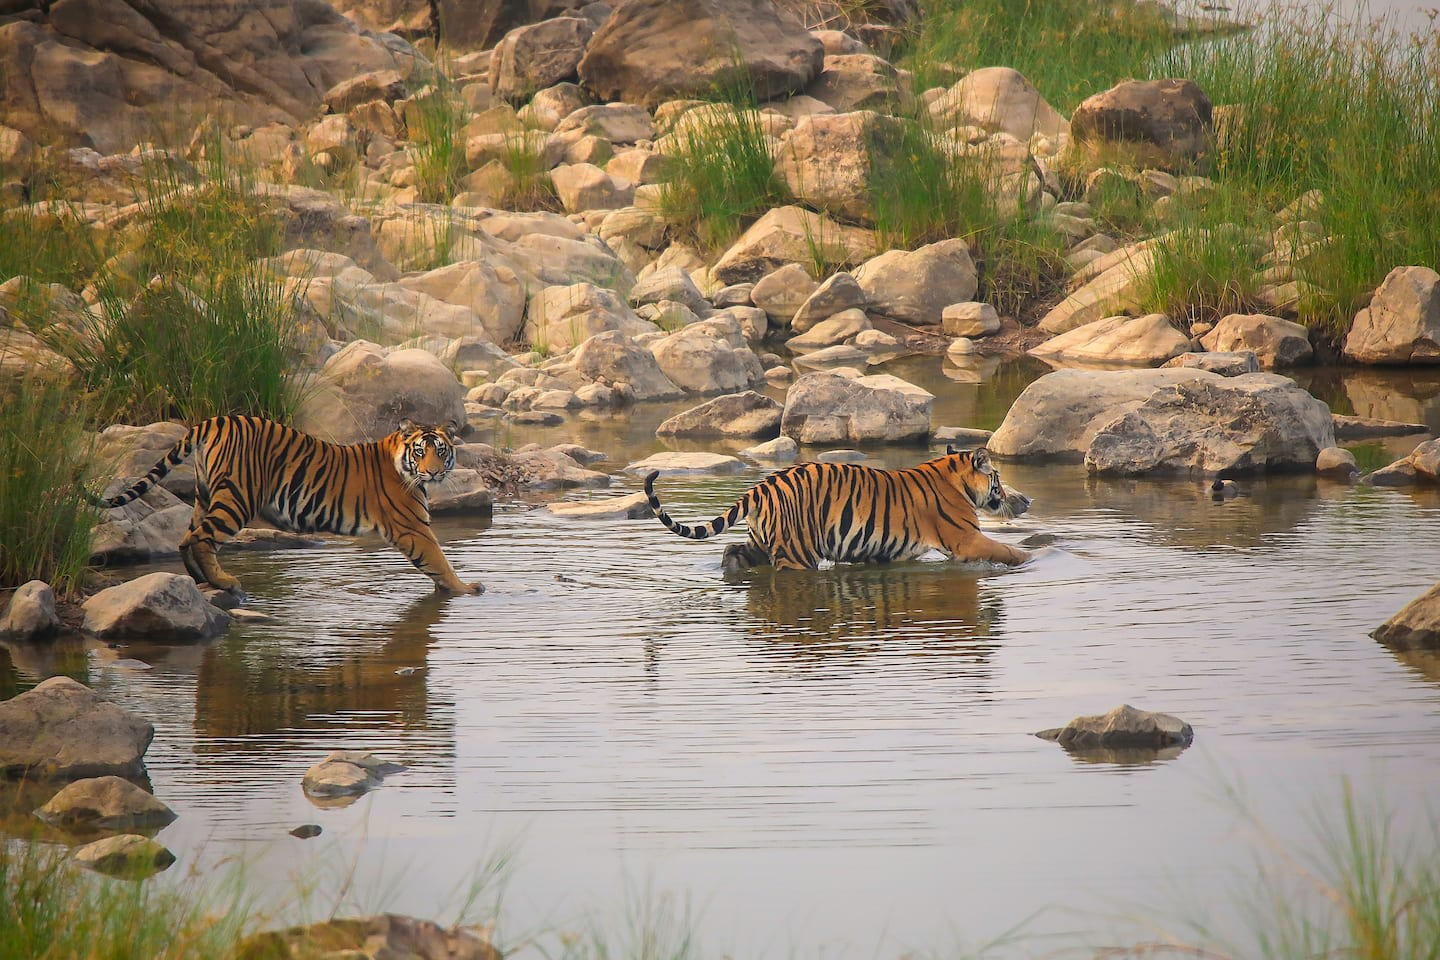 Tigers are solitary animals, except for females raising cubs. Cubs, seen here frolicking in the Ken River, stay with the mother for two-three years, after which they seek their own territory. Photo: Phalgun Patel